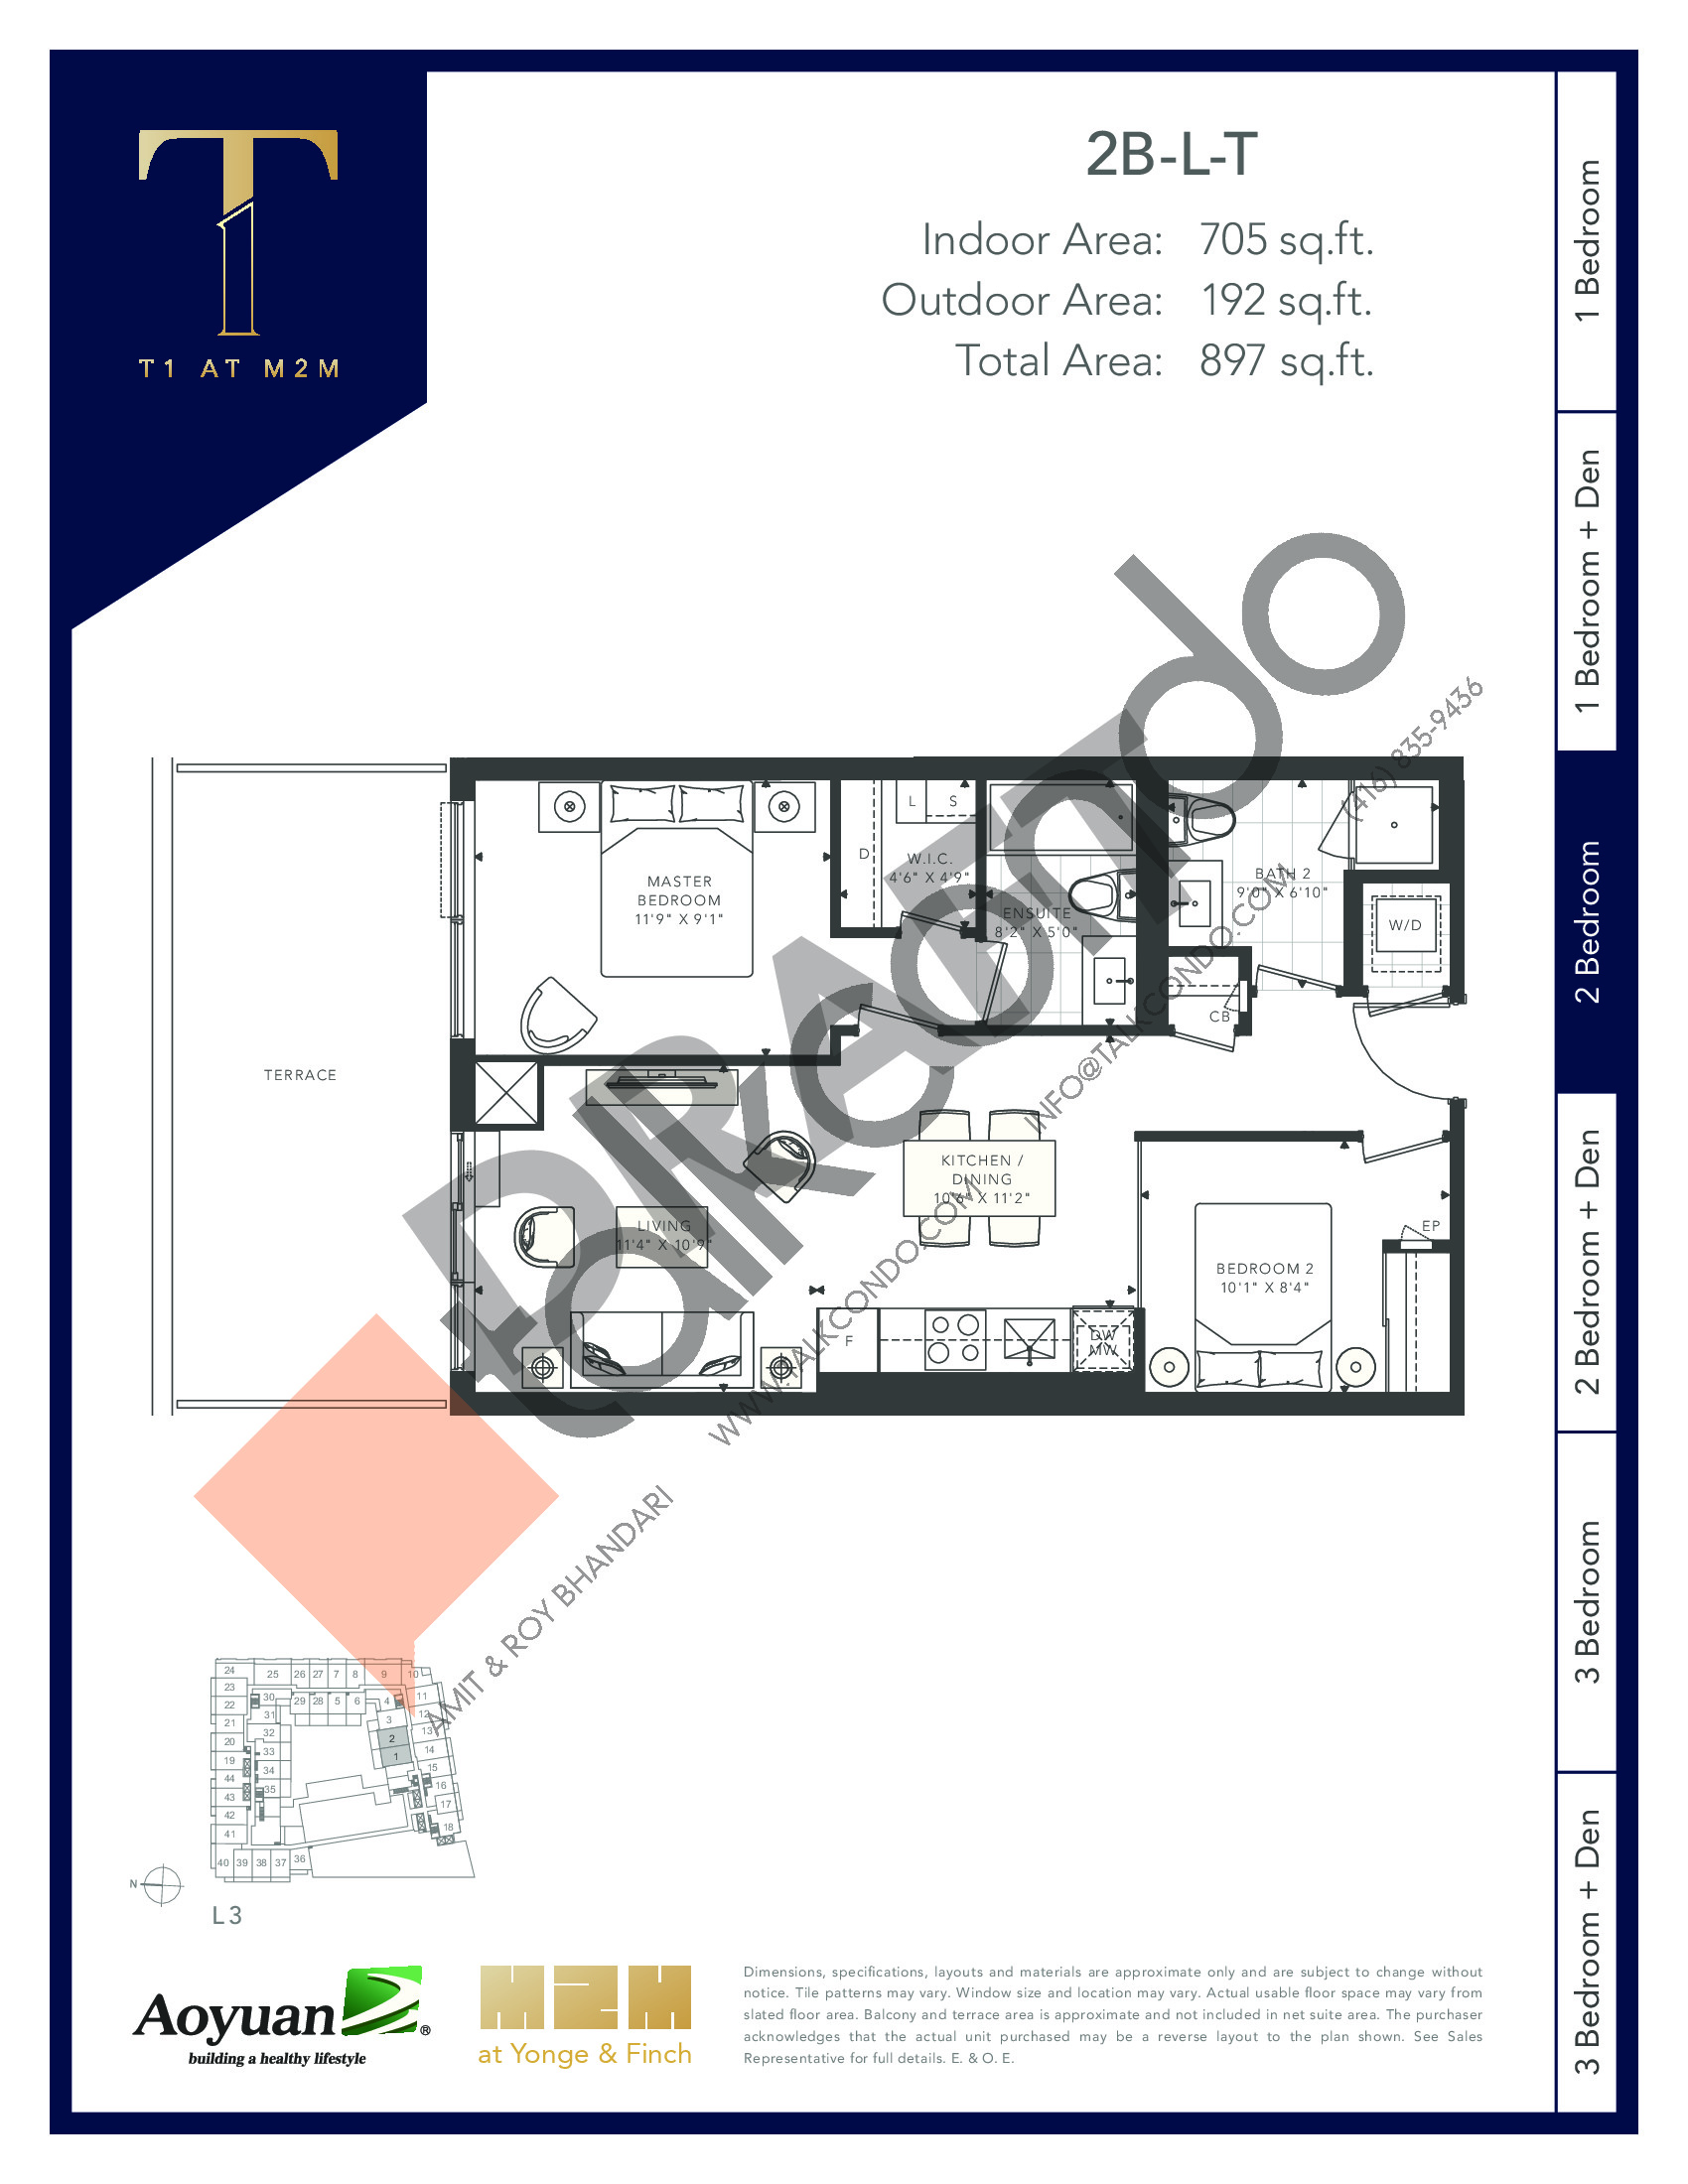 2B-L-T (Podium) Floor Plan at T1 at M2M Condos - 705 sq.ft